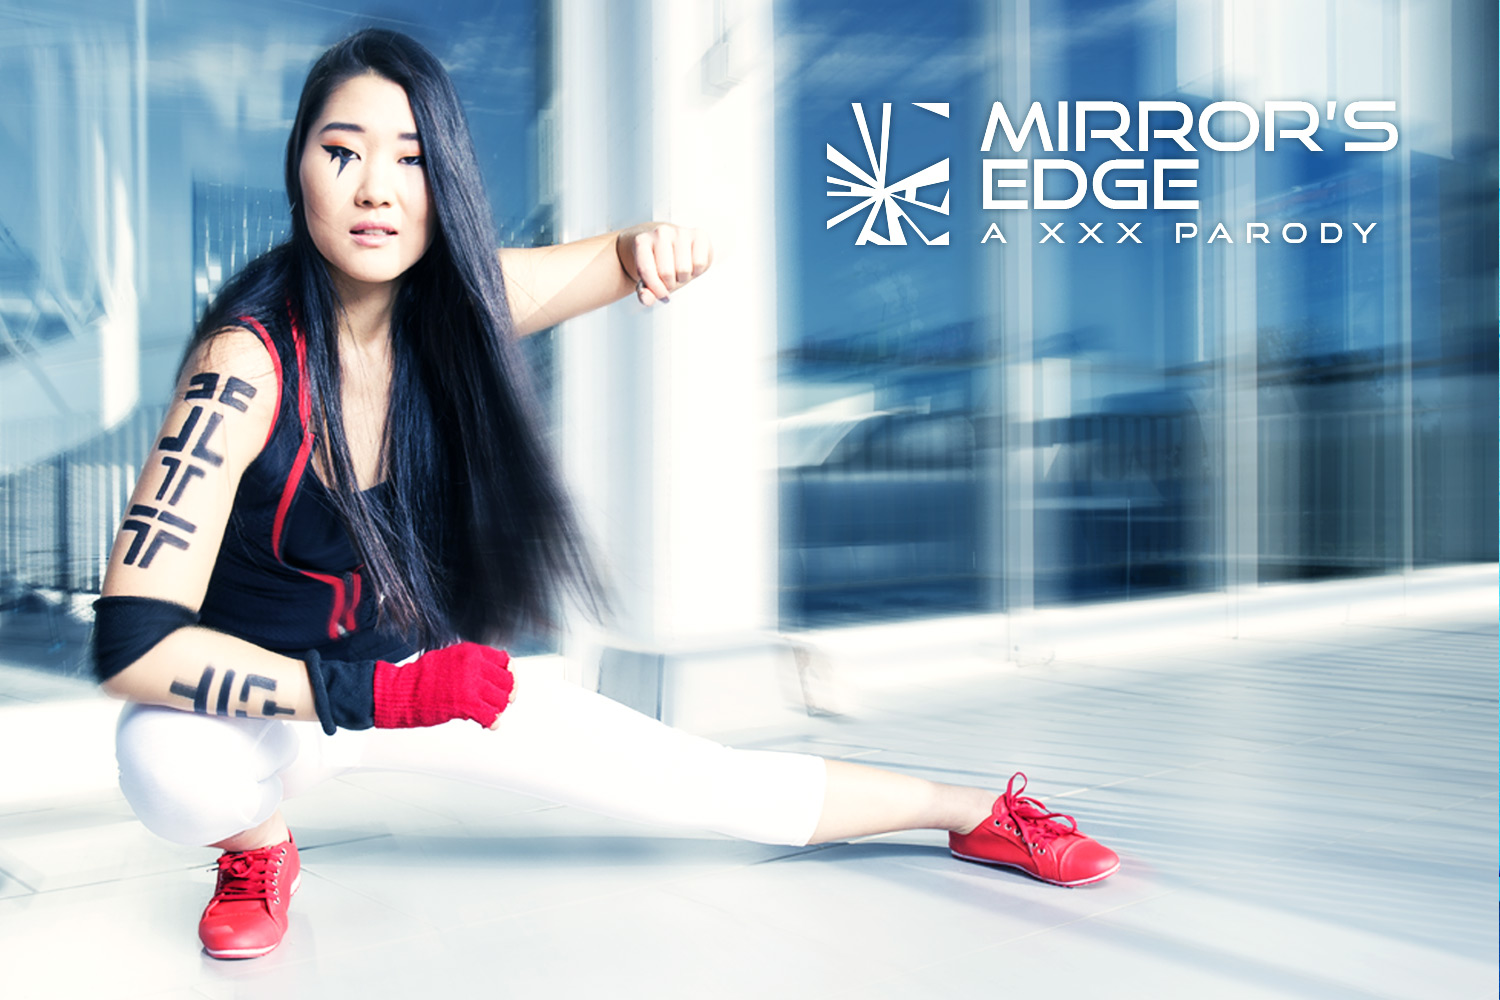 Mirror's Edge VR Porn Cosplay starring Katana as Faith | MobileVRXXX